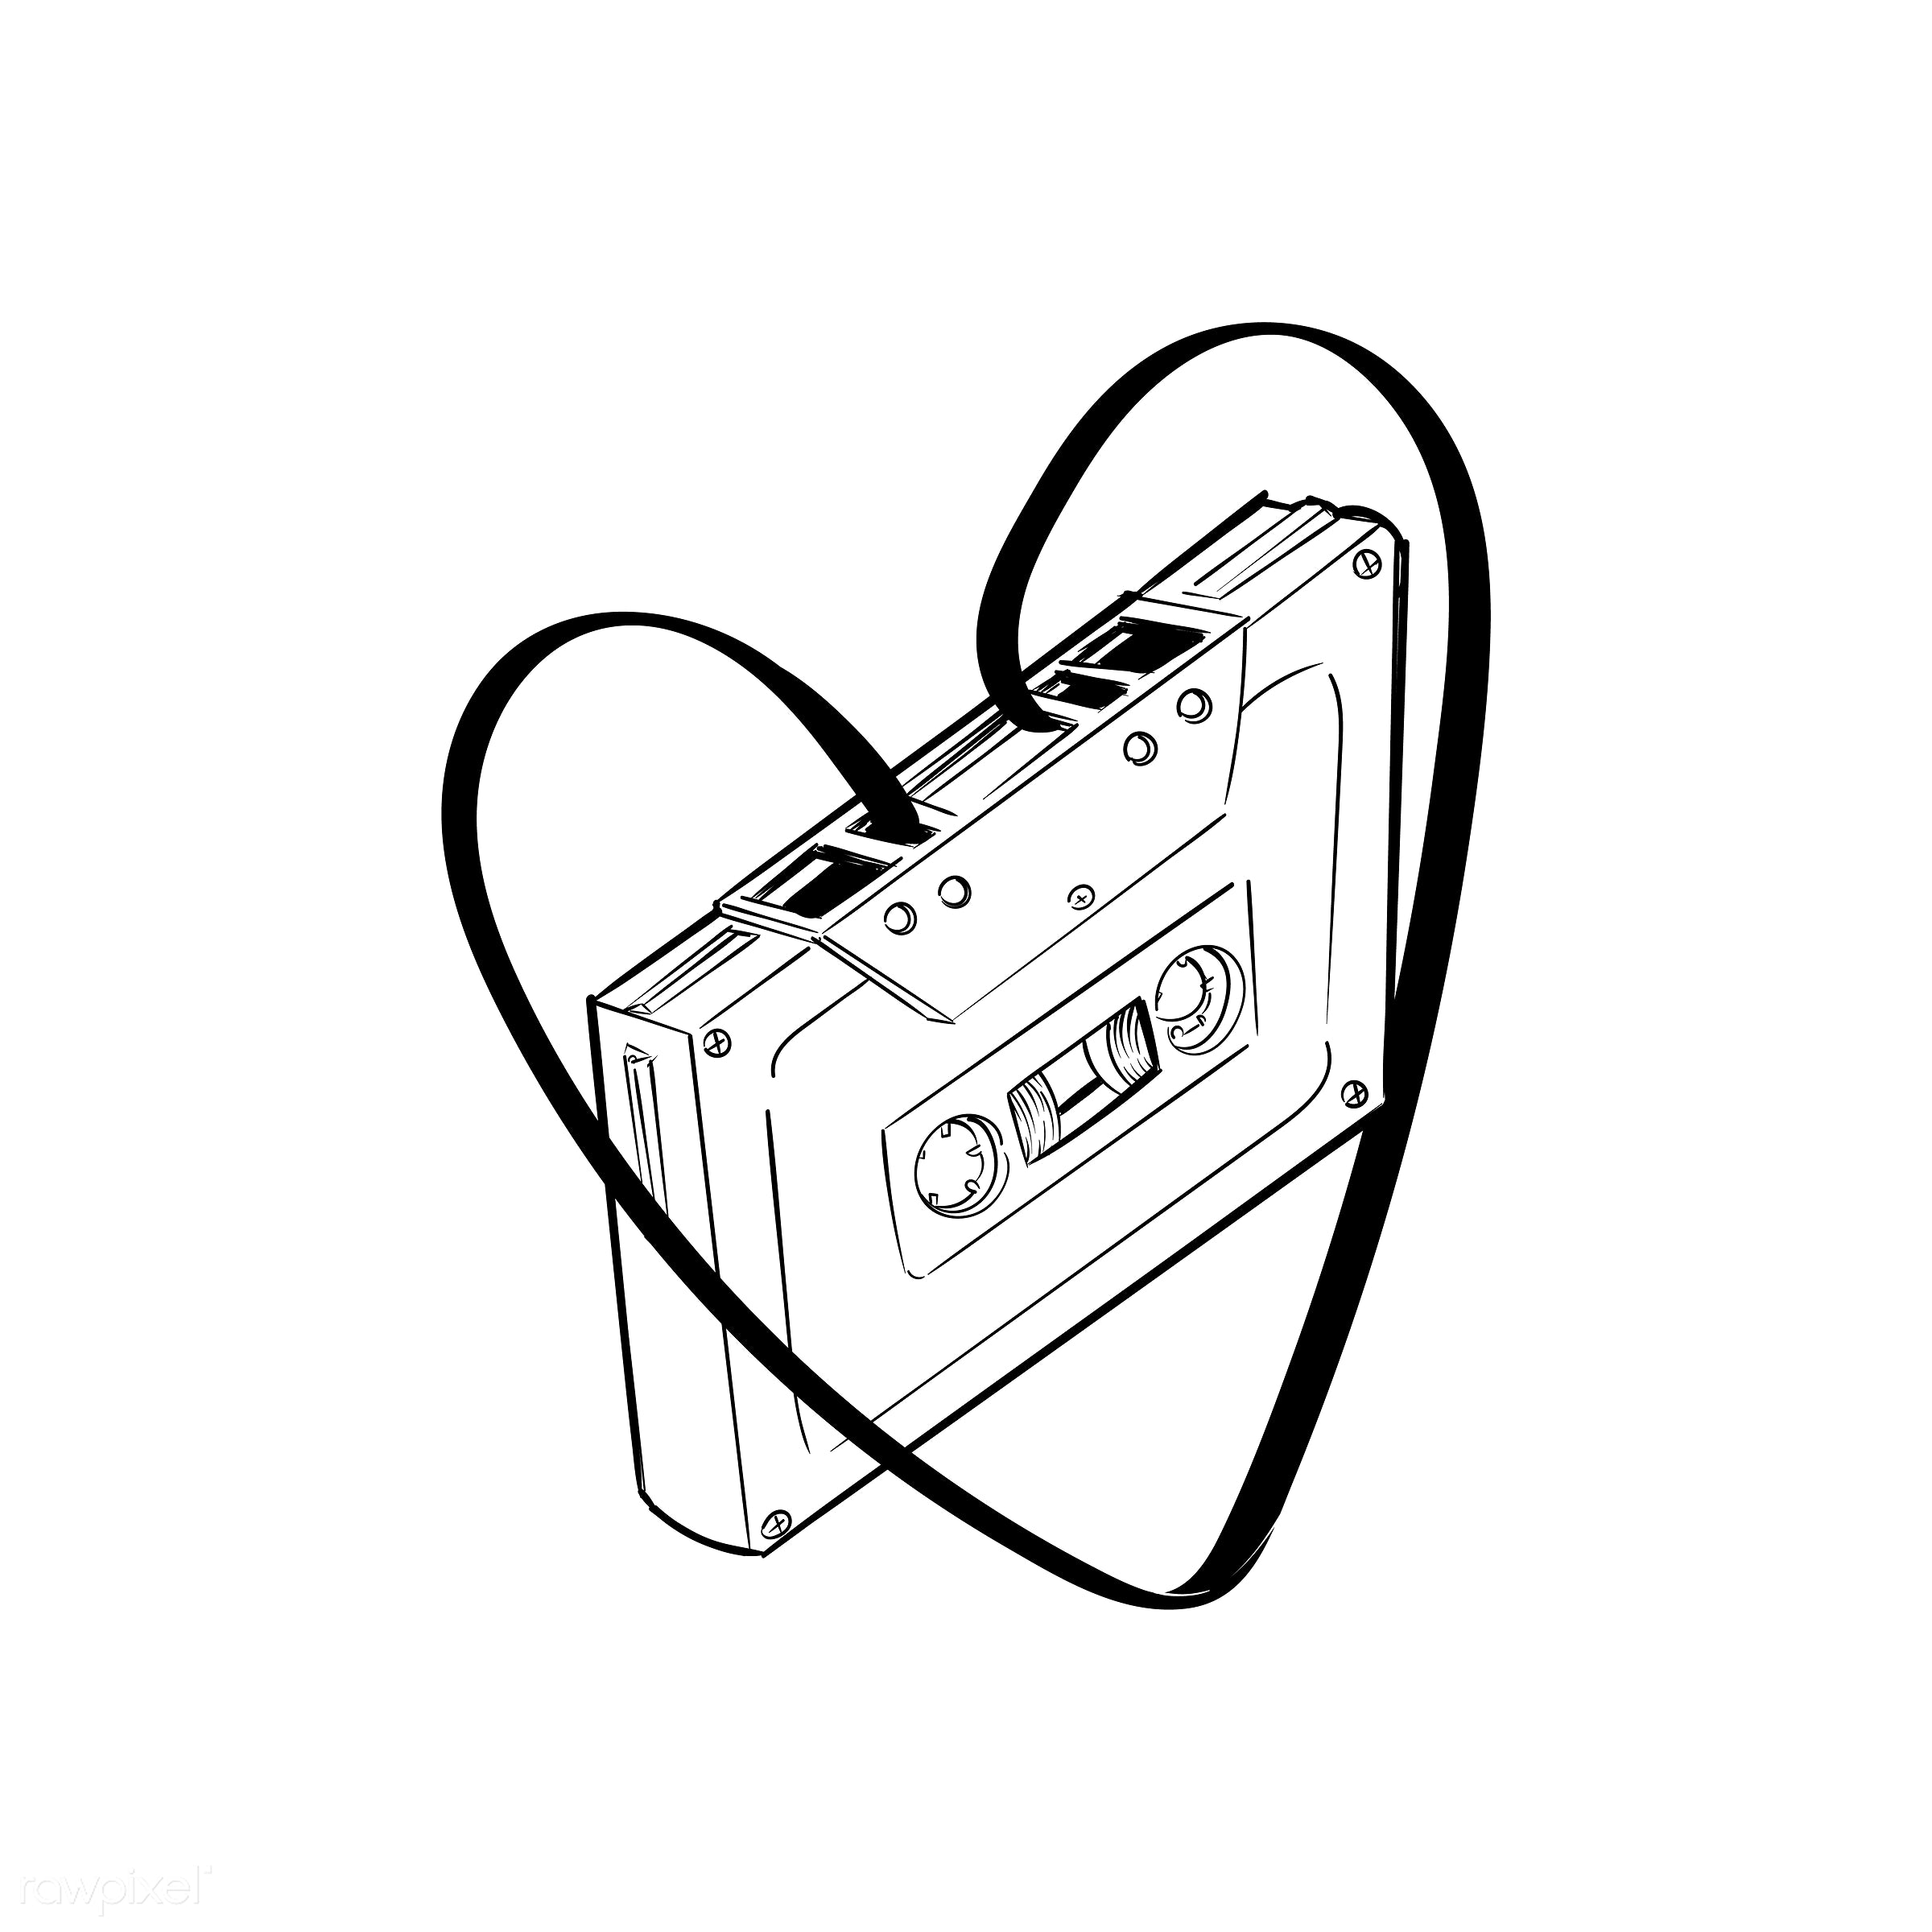 Hand drawing illustration of music entertainment concept - art, artwork, cassette, creative, creativity, design, draw,...